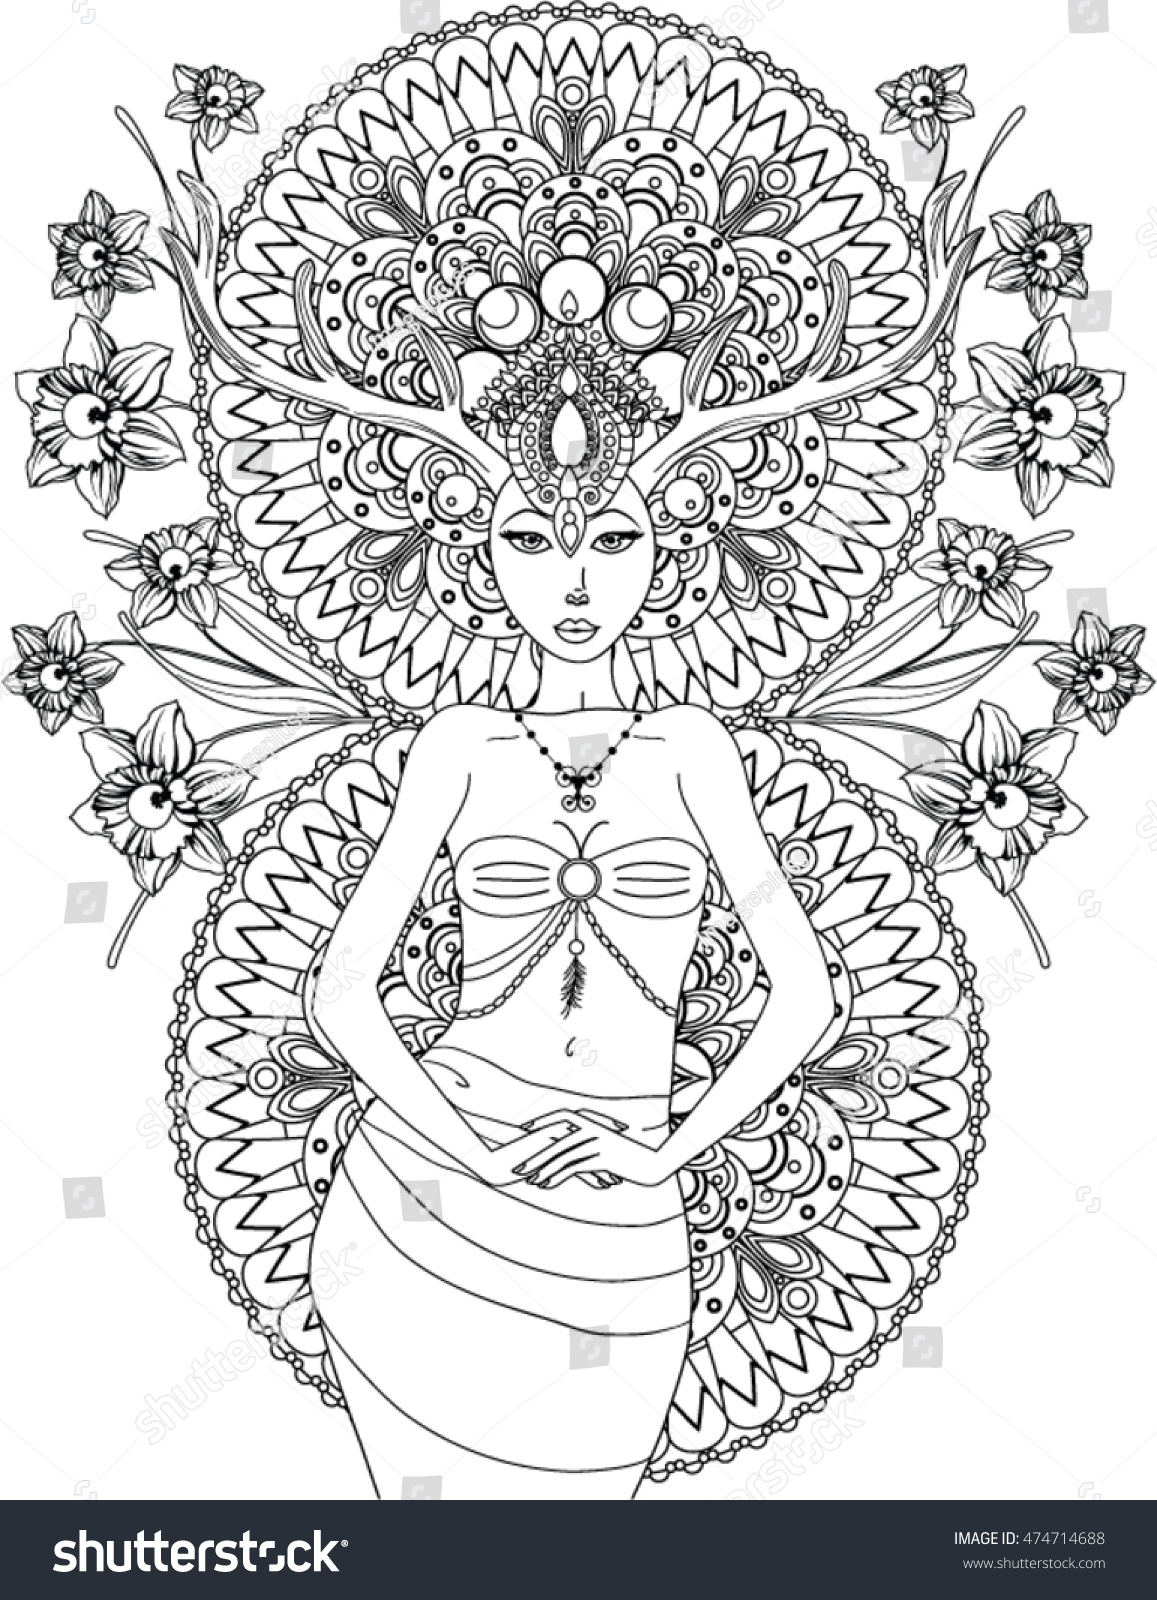 India coloring pages for adults - Galerry India Coloring Pages For Adults